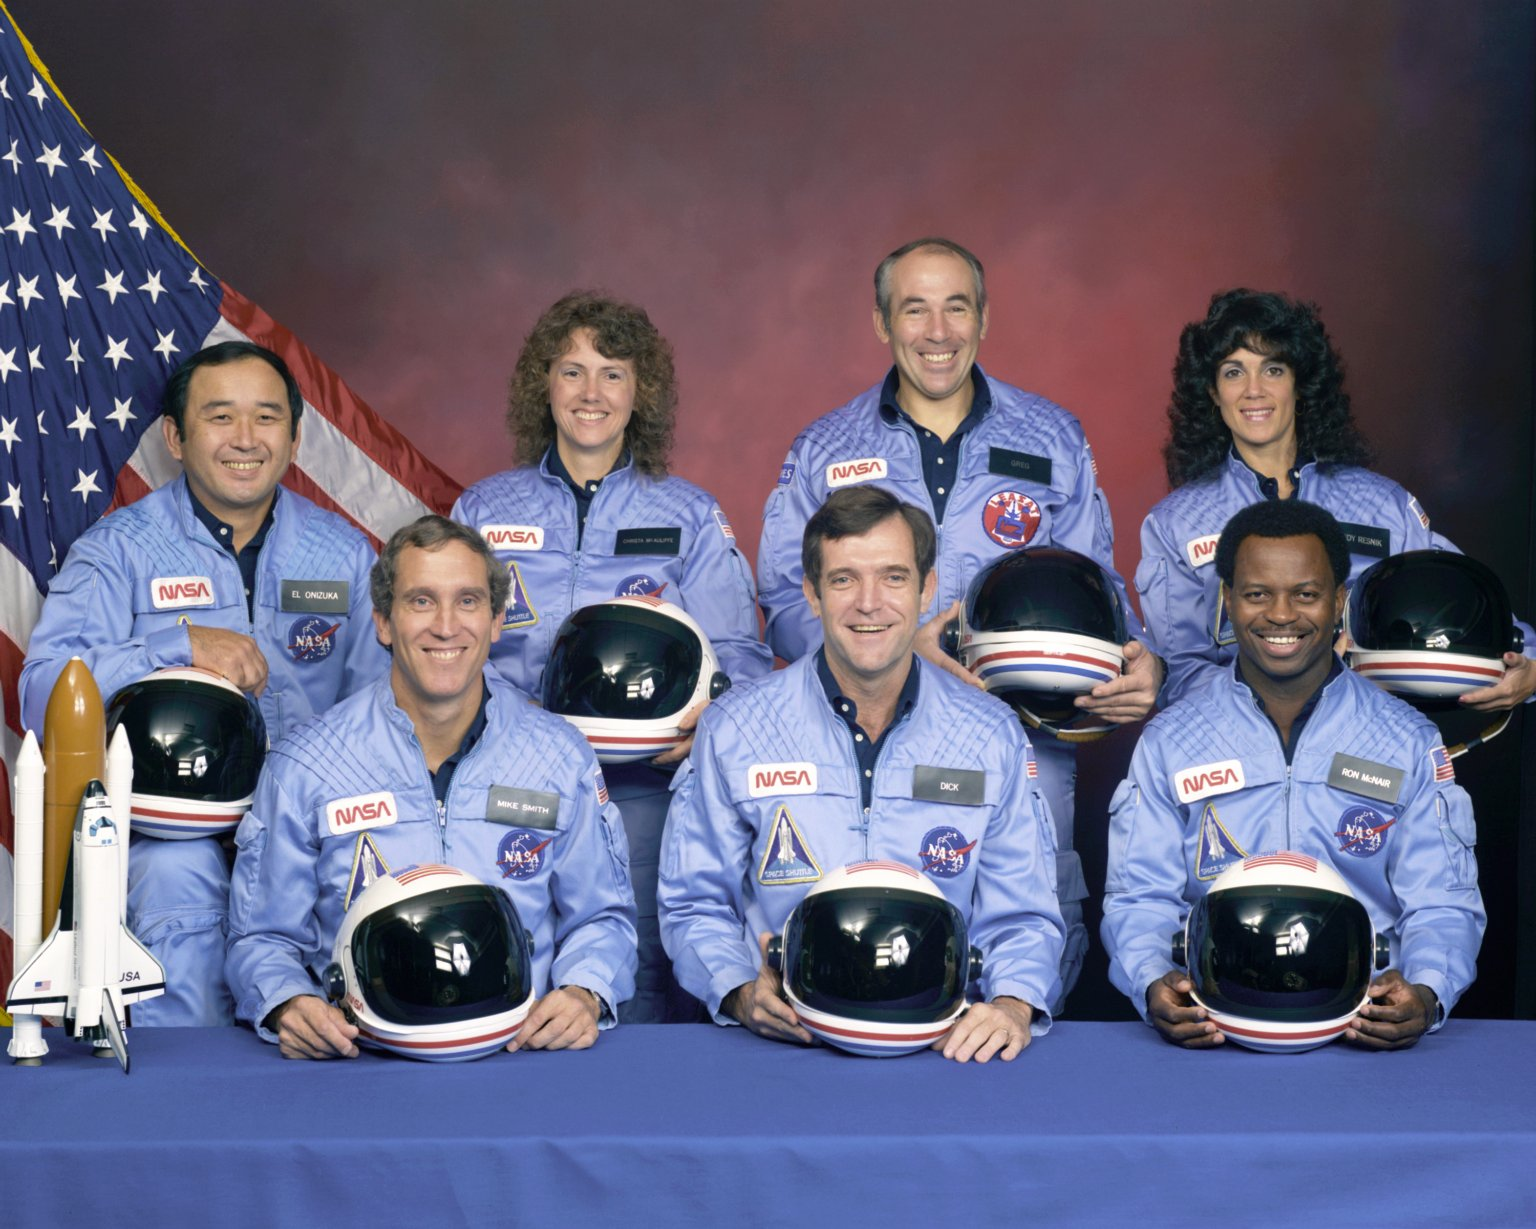 The STS 51-L Crew